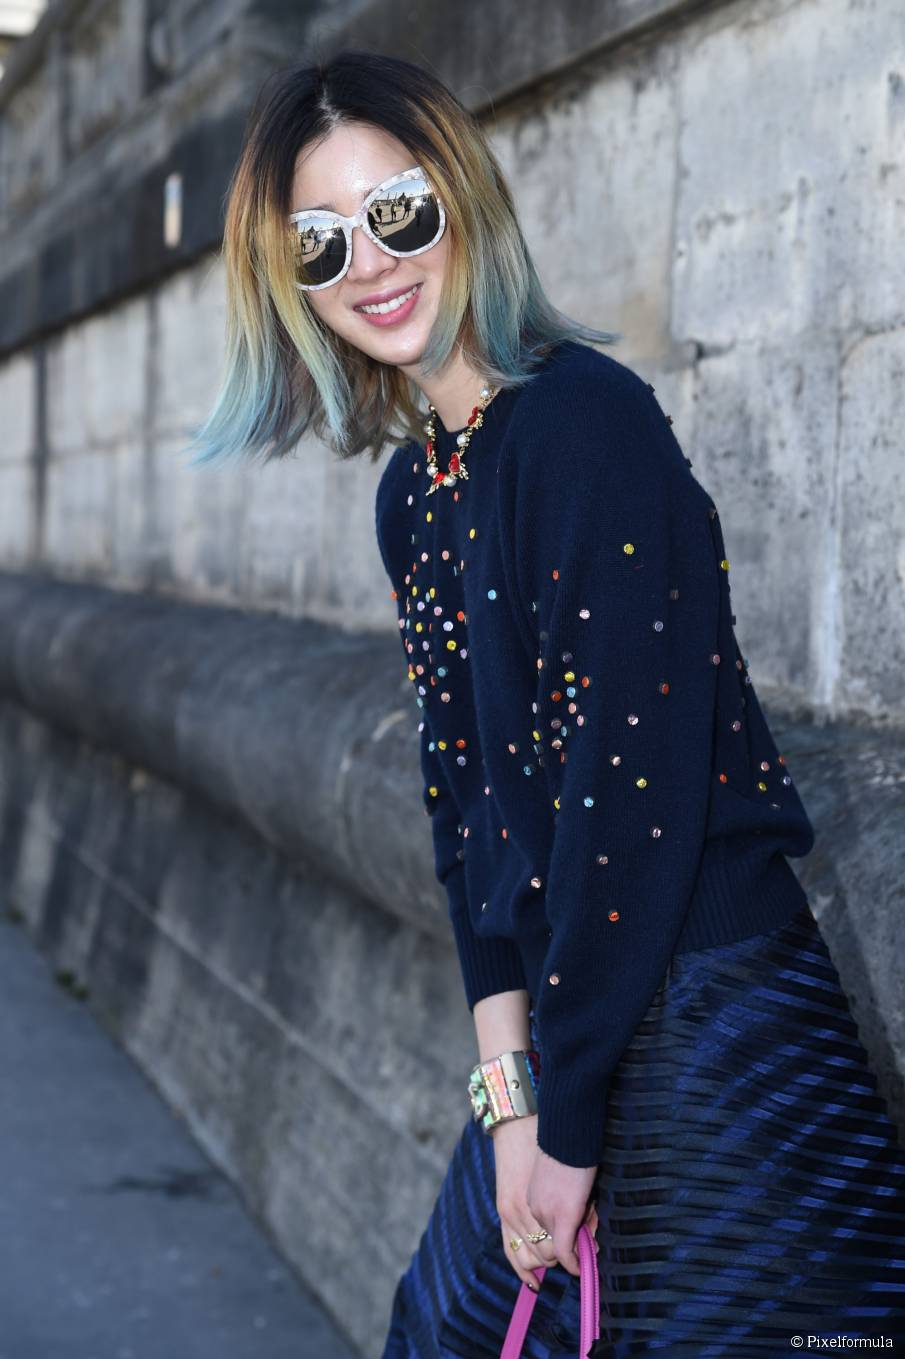 Haarfarbe Inspiration: 6 makellose Streetstyle-Looks